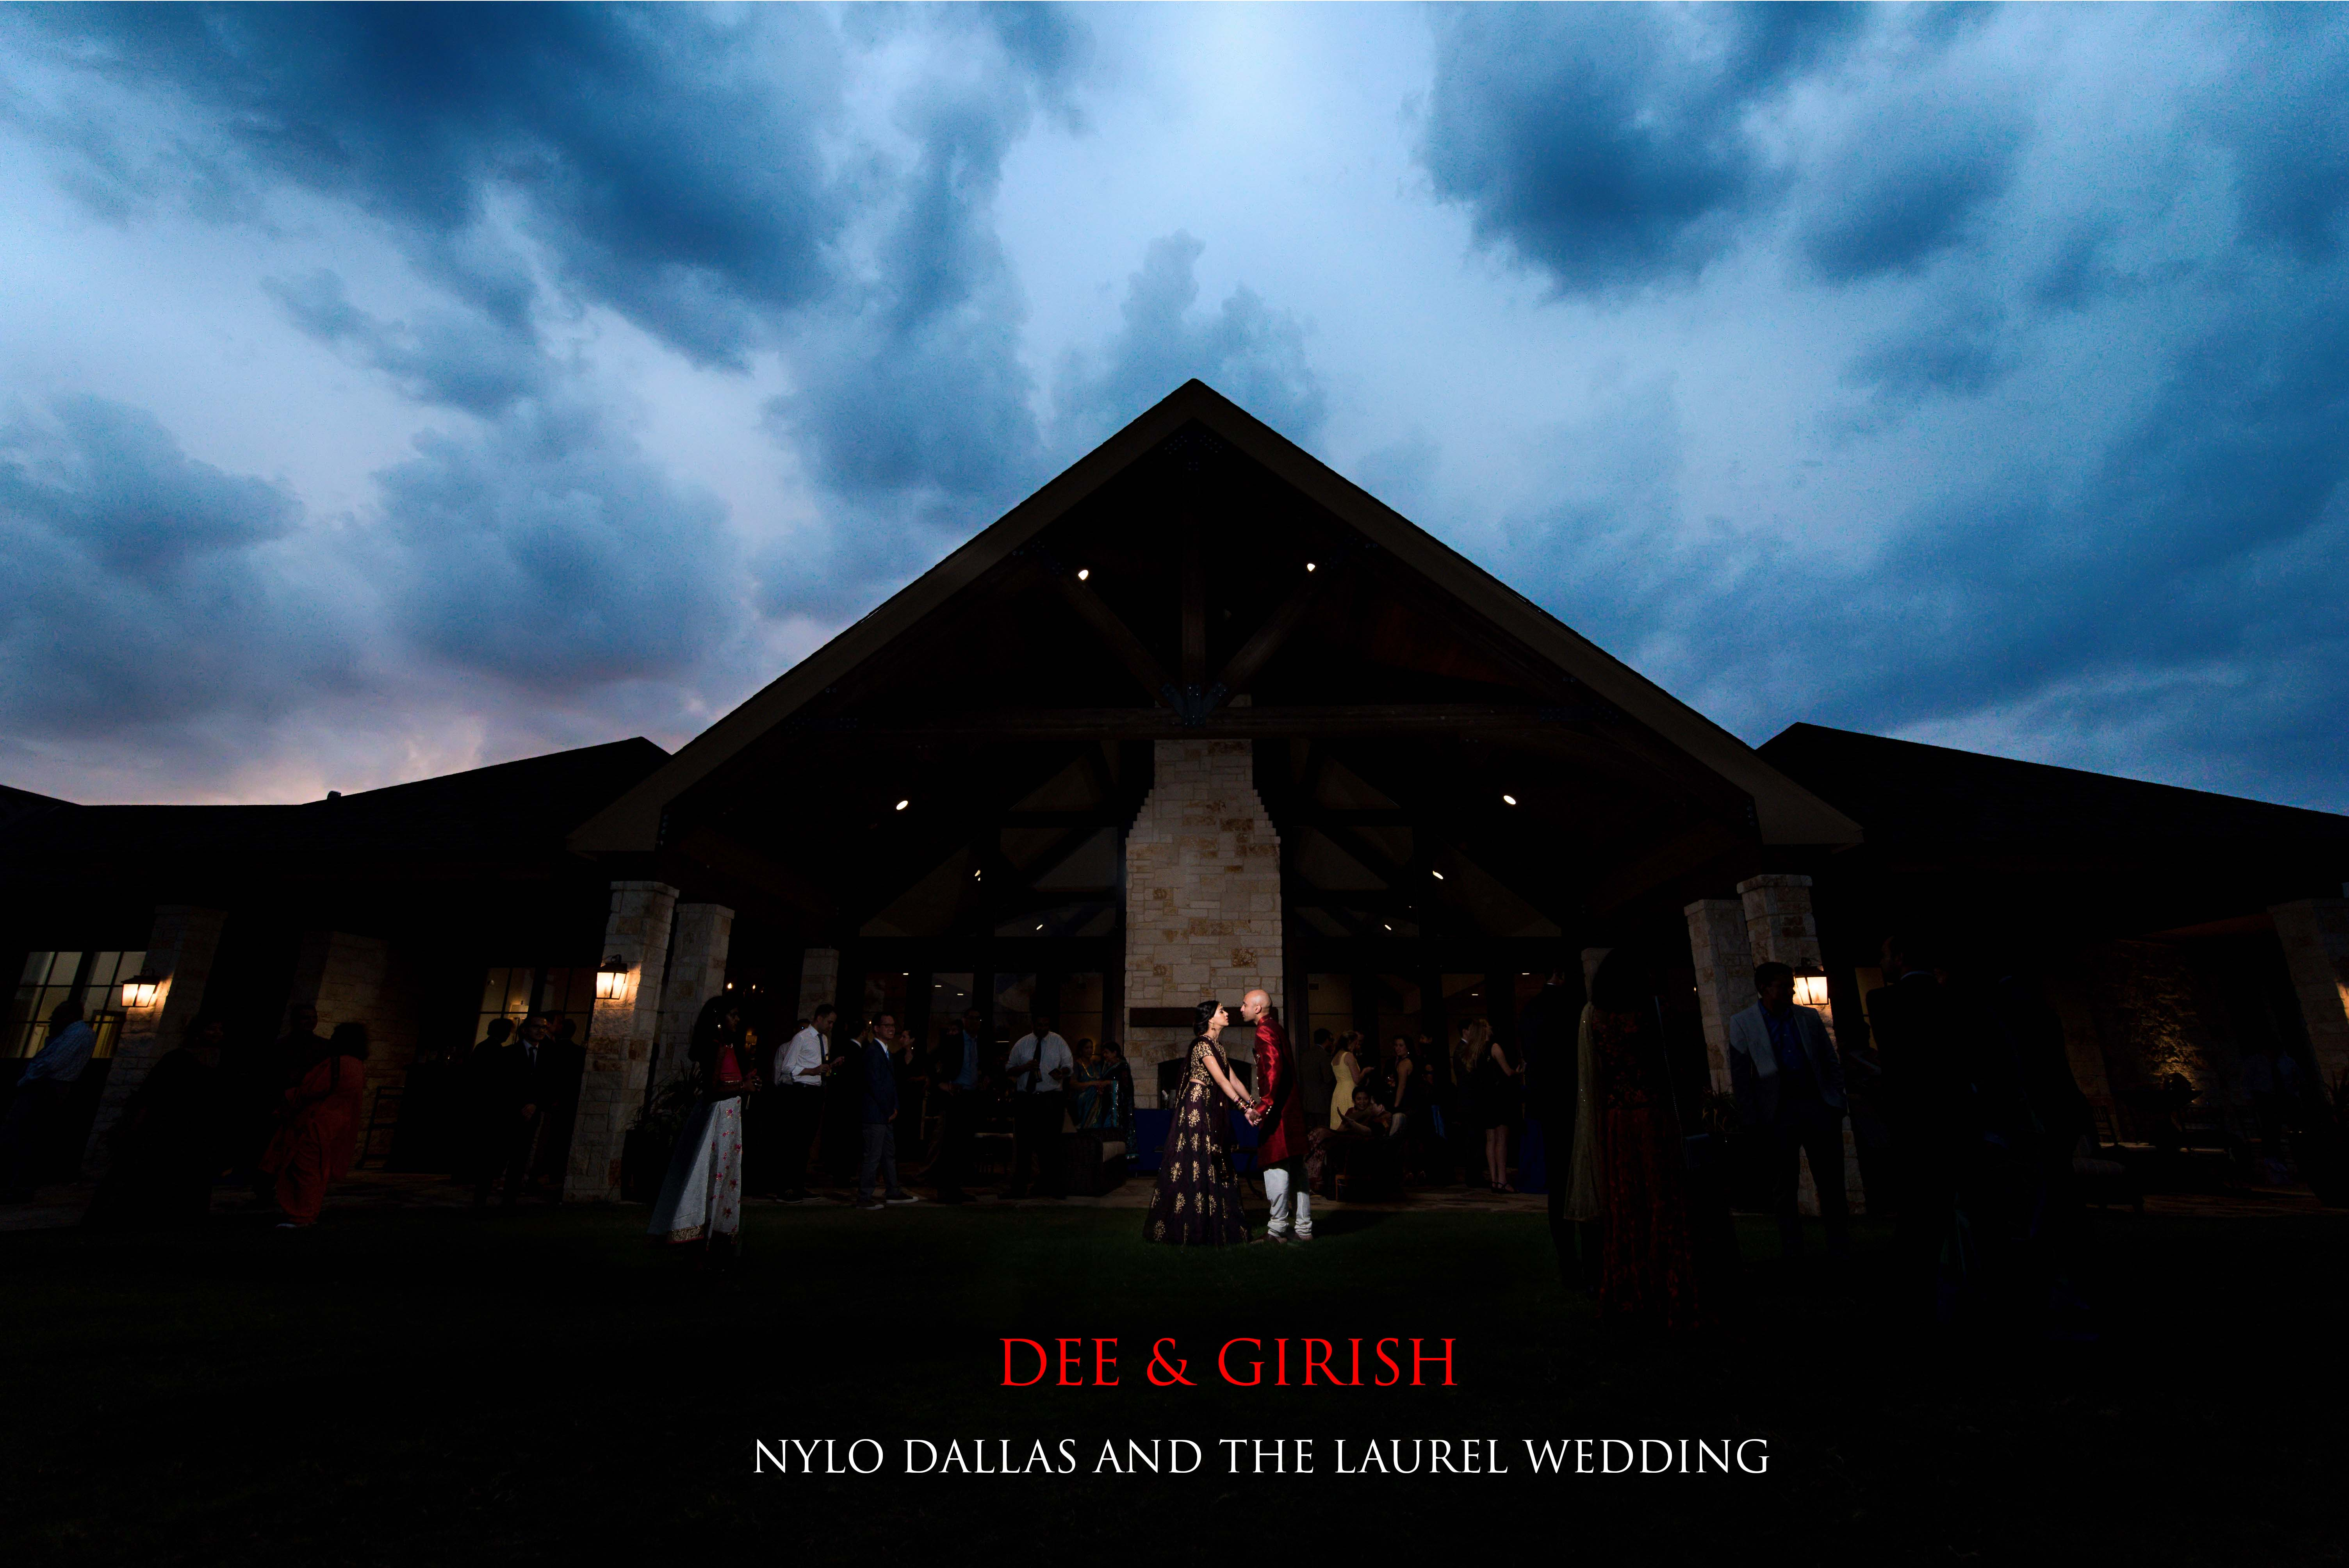 NYLO Dallas - The Laurel Wedding